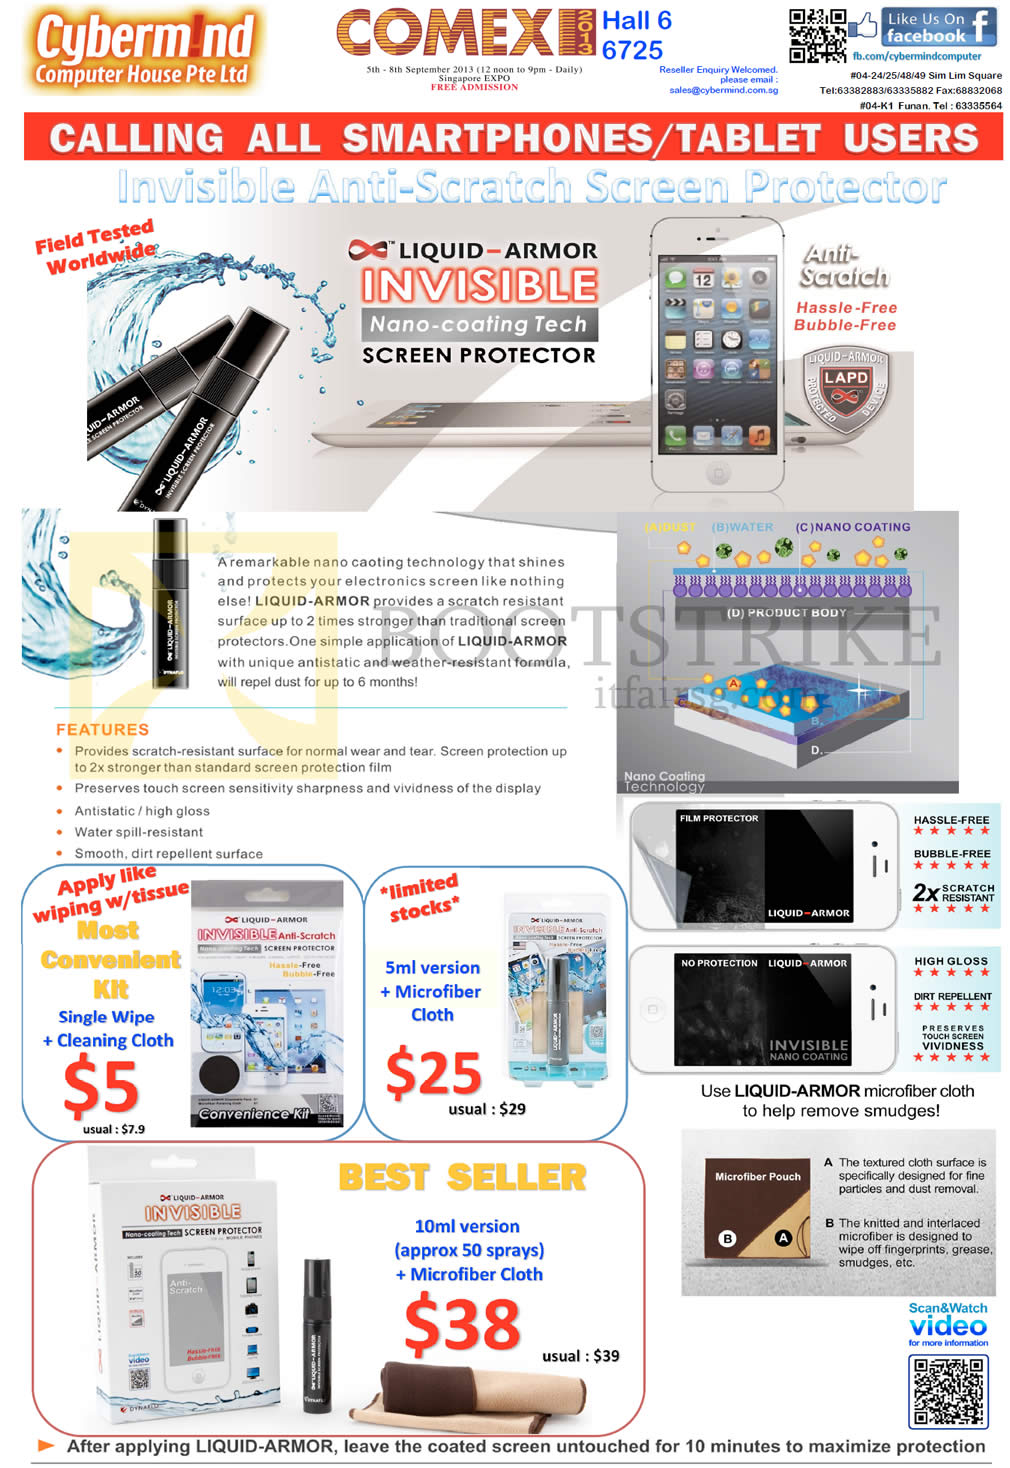 COMEX 2013 price list image brochure of Cybermind Liquid Armor Invisible Screen Protector